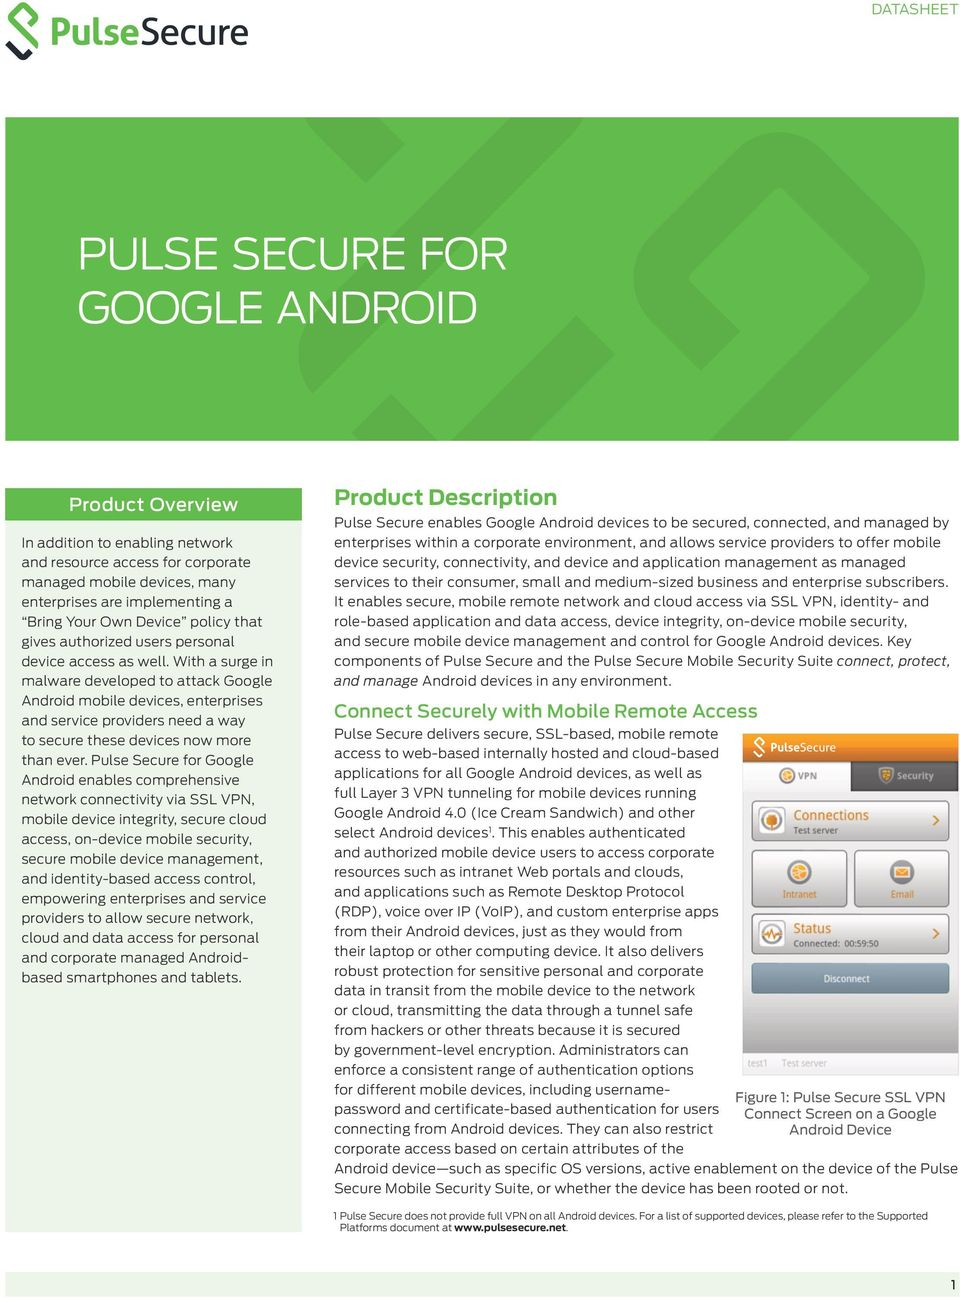 With a surge in malware developed to attack Google Android mobile devices, enterprises and service providers need a way to secure these devices now more than ever.